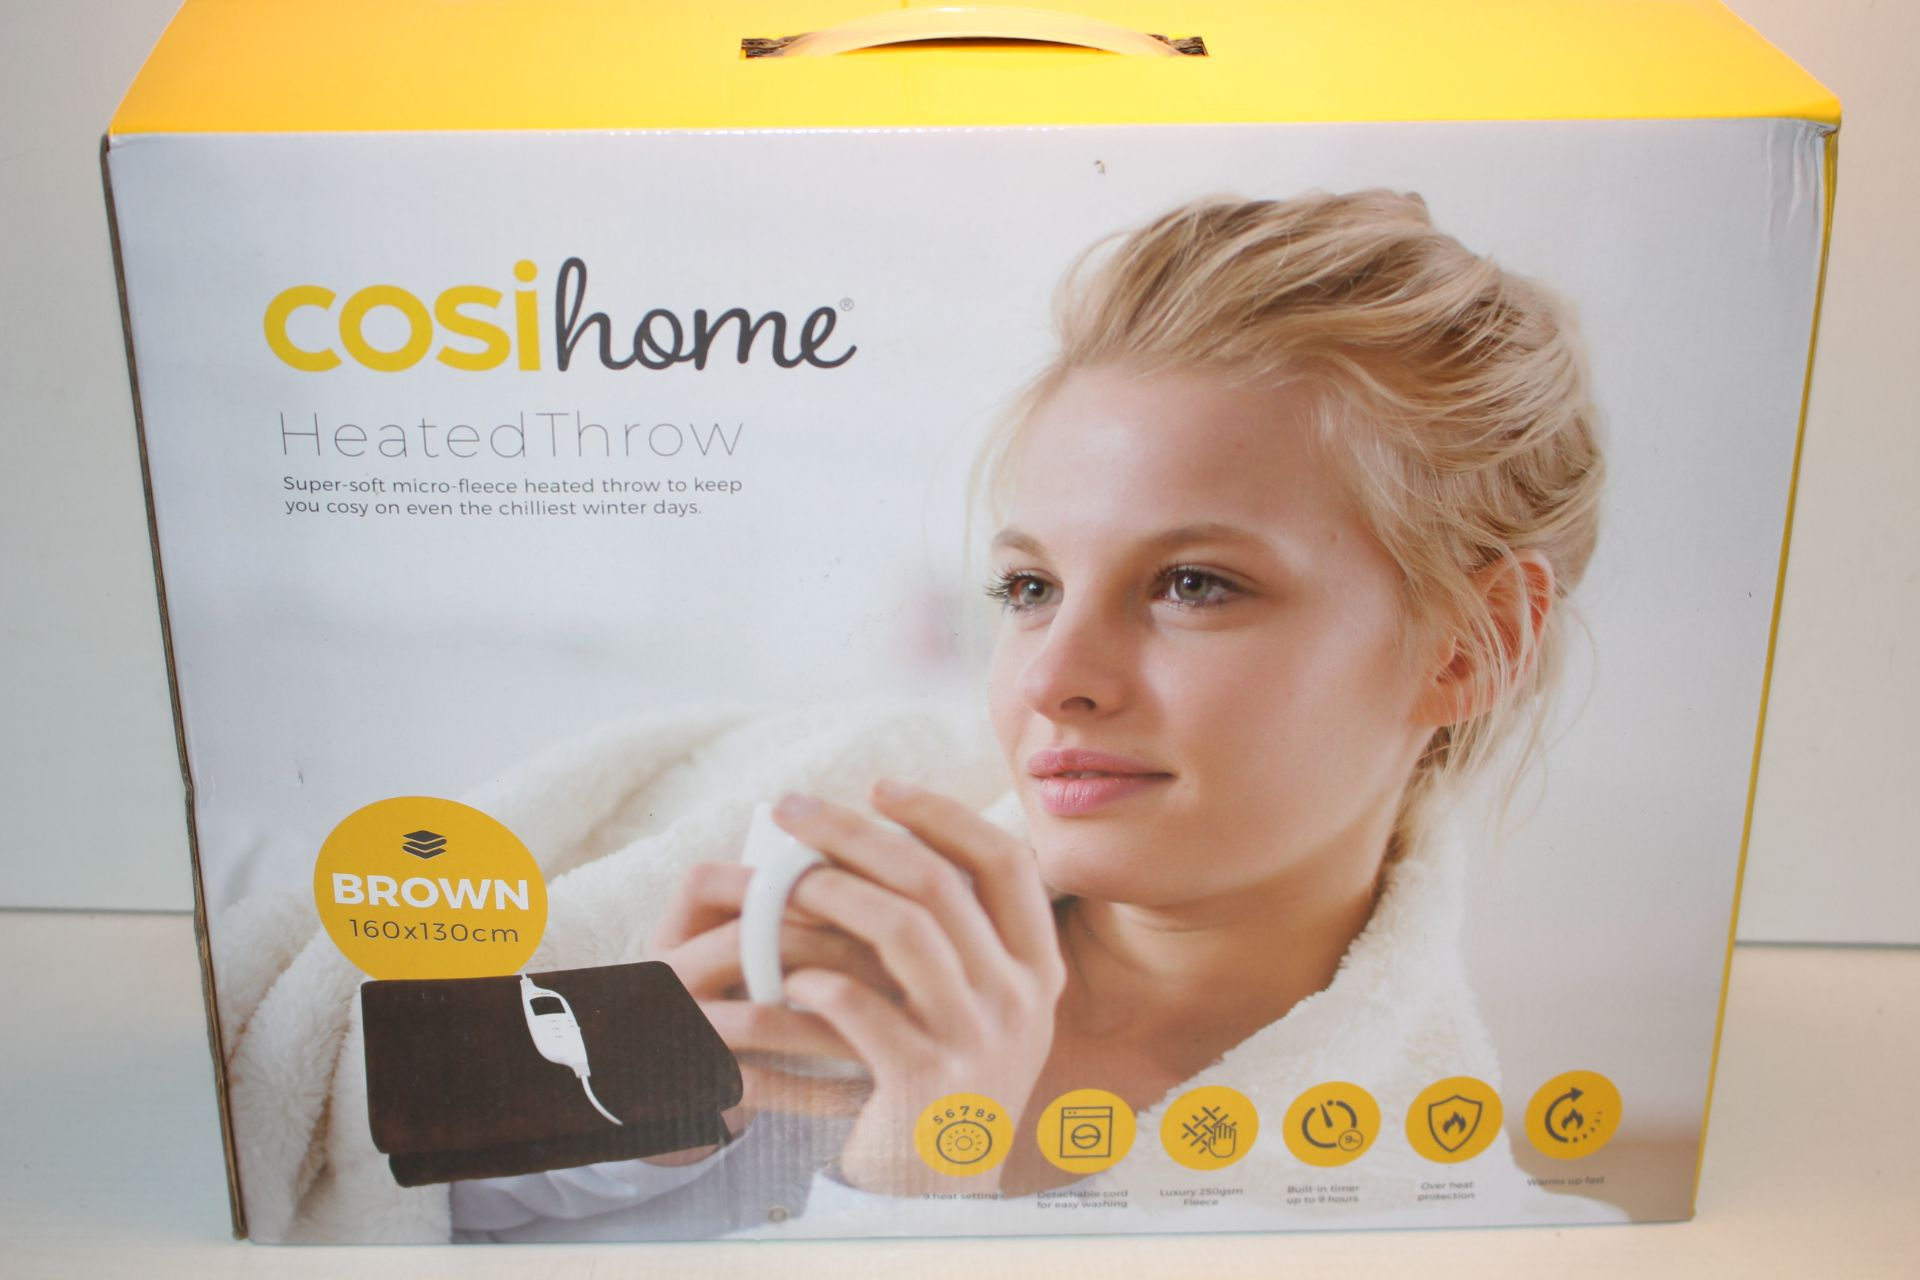 BOXED COSI HOME HEATED THROW BROWN 160 X 130 CM RRP £54.99Condition ReportAppraisal Available on